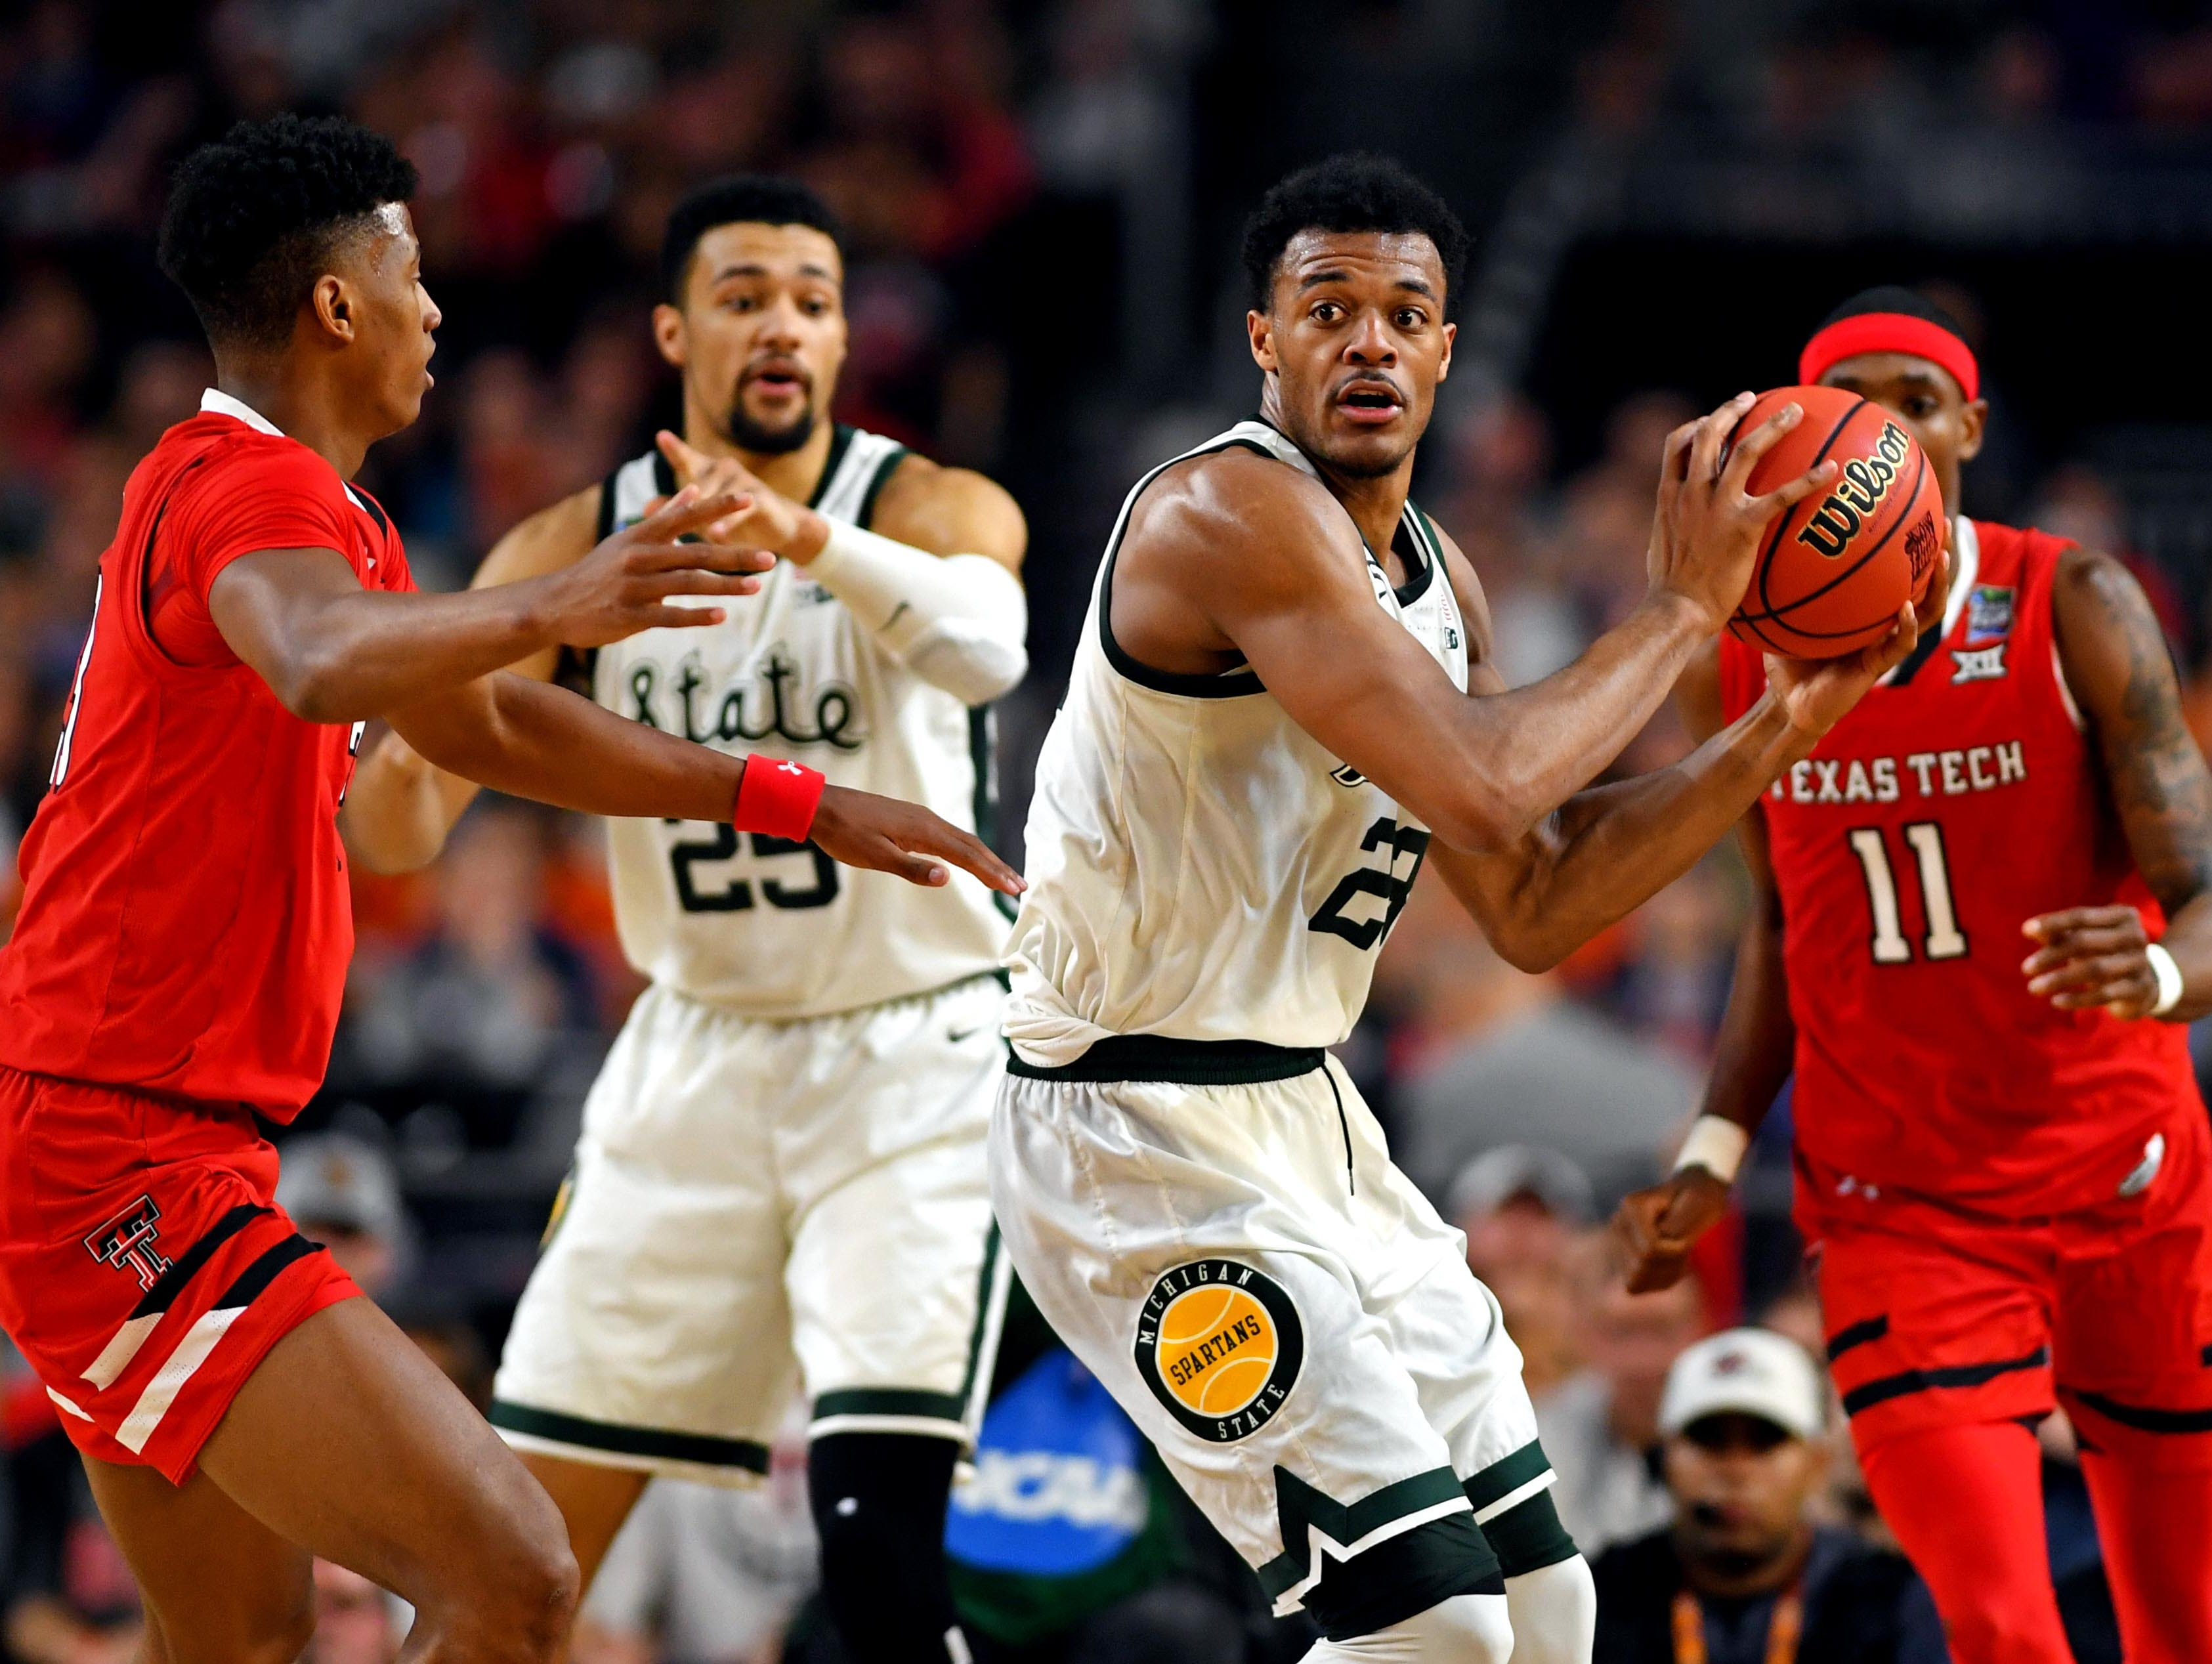 Apr 6, 2019; Minneapolis, MN, USA; Michigan State Spartans forward Xavier Tillman (23) handles the ball against Texas Tech Red Raiders guard Jarrett Culver (23) during the first half in the semifinals of the 2019 men's Final Four at US Bank Stadium. Mandatory Credit: Bob Donnan-USA TODAY Sports